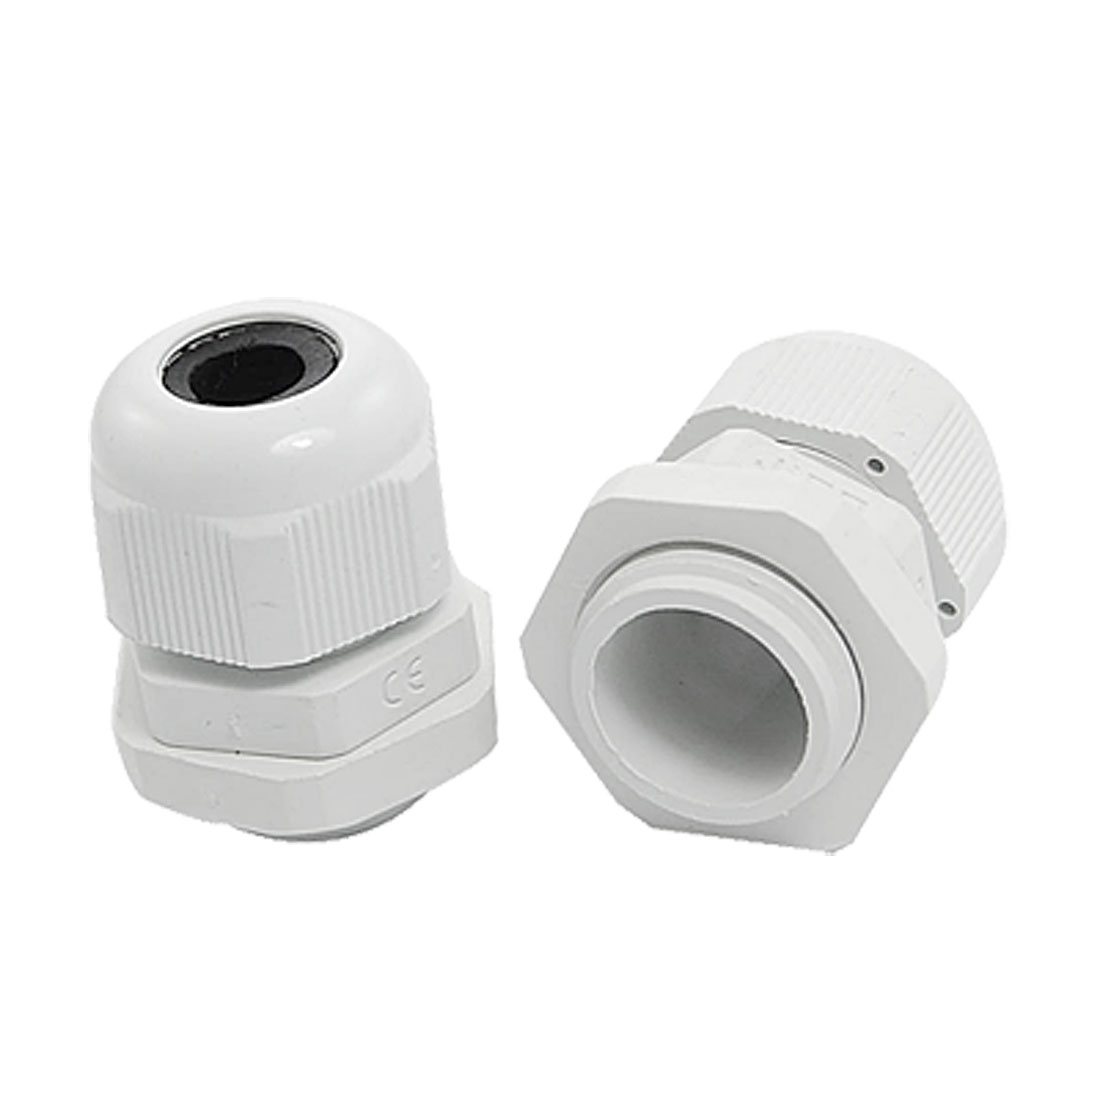 PG21 2 Pcs White Plastic Waterproof Cable Glands Adapters